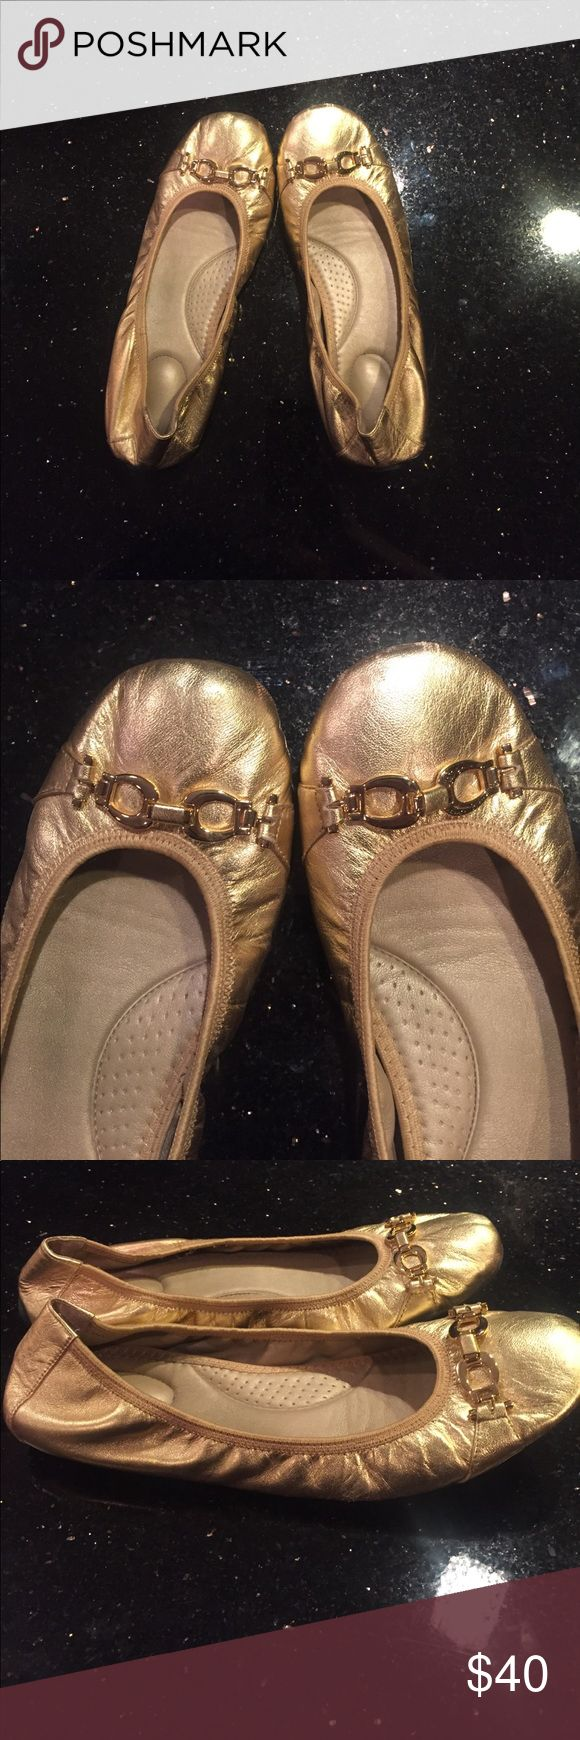 """Womens gold ballet flats ✨""""Me Too""""✨Gold ballet flats with gold buckle at the front!! The back stretches so they are very comfortable. Adorable for work or a dress. Only worn a few times!!! In awesome condition!!! 💥 Shoes Flats & Loafers"""